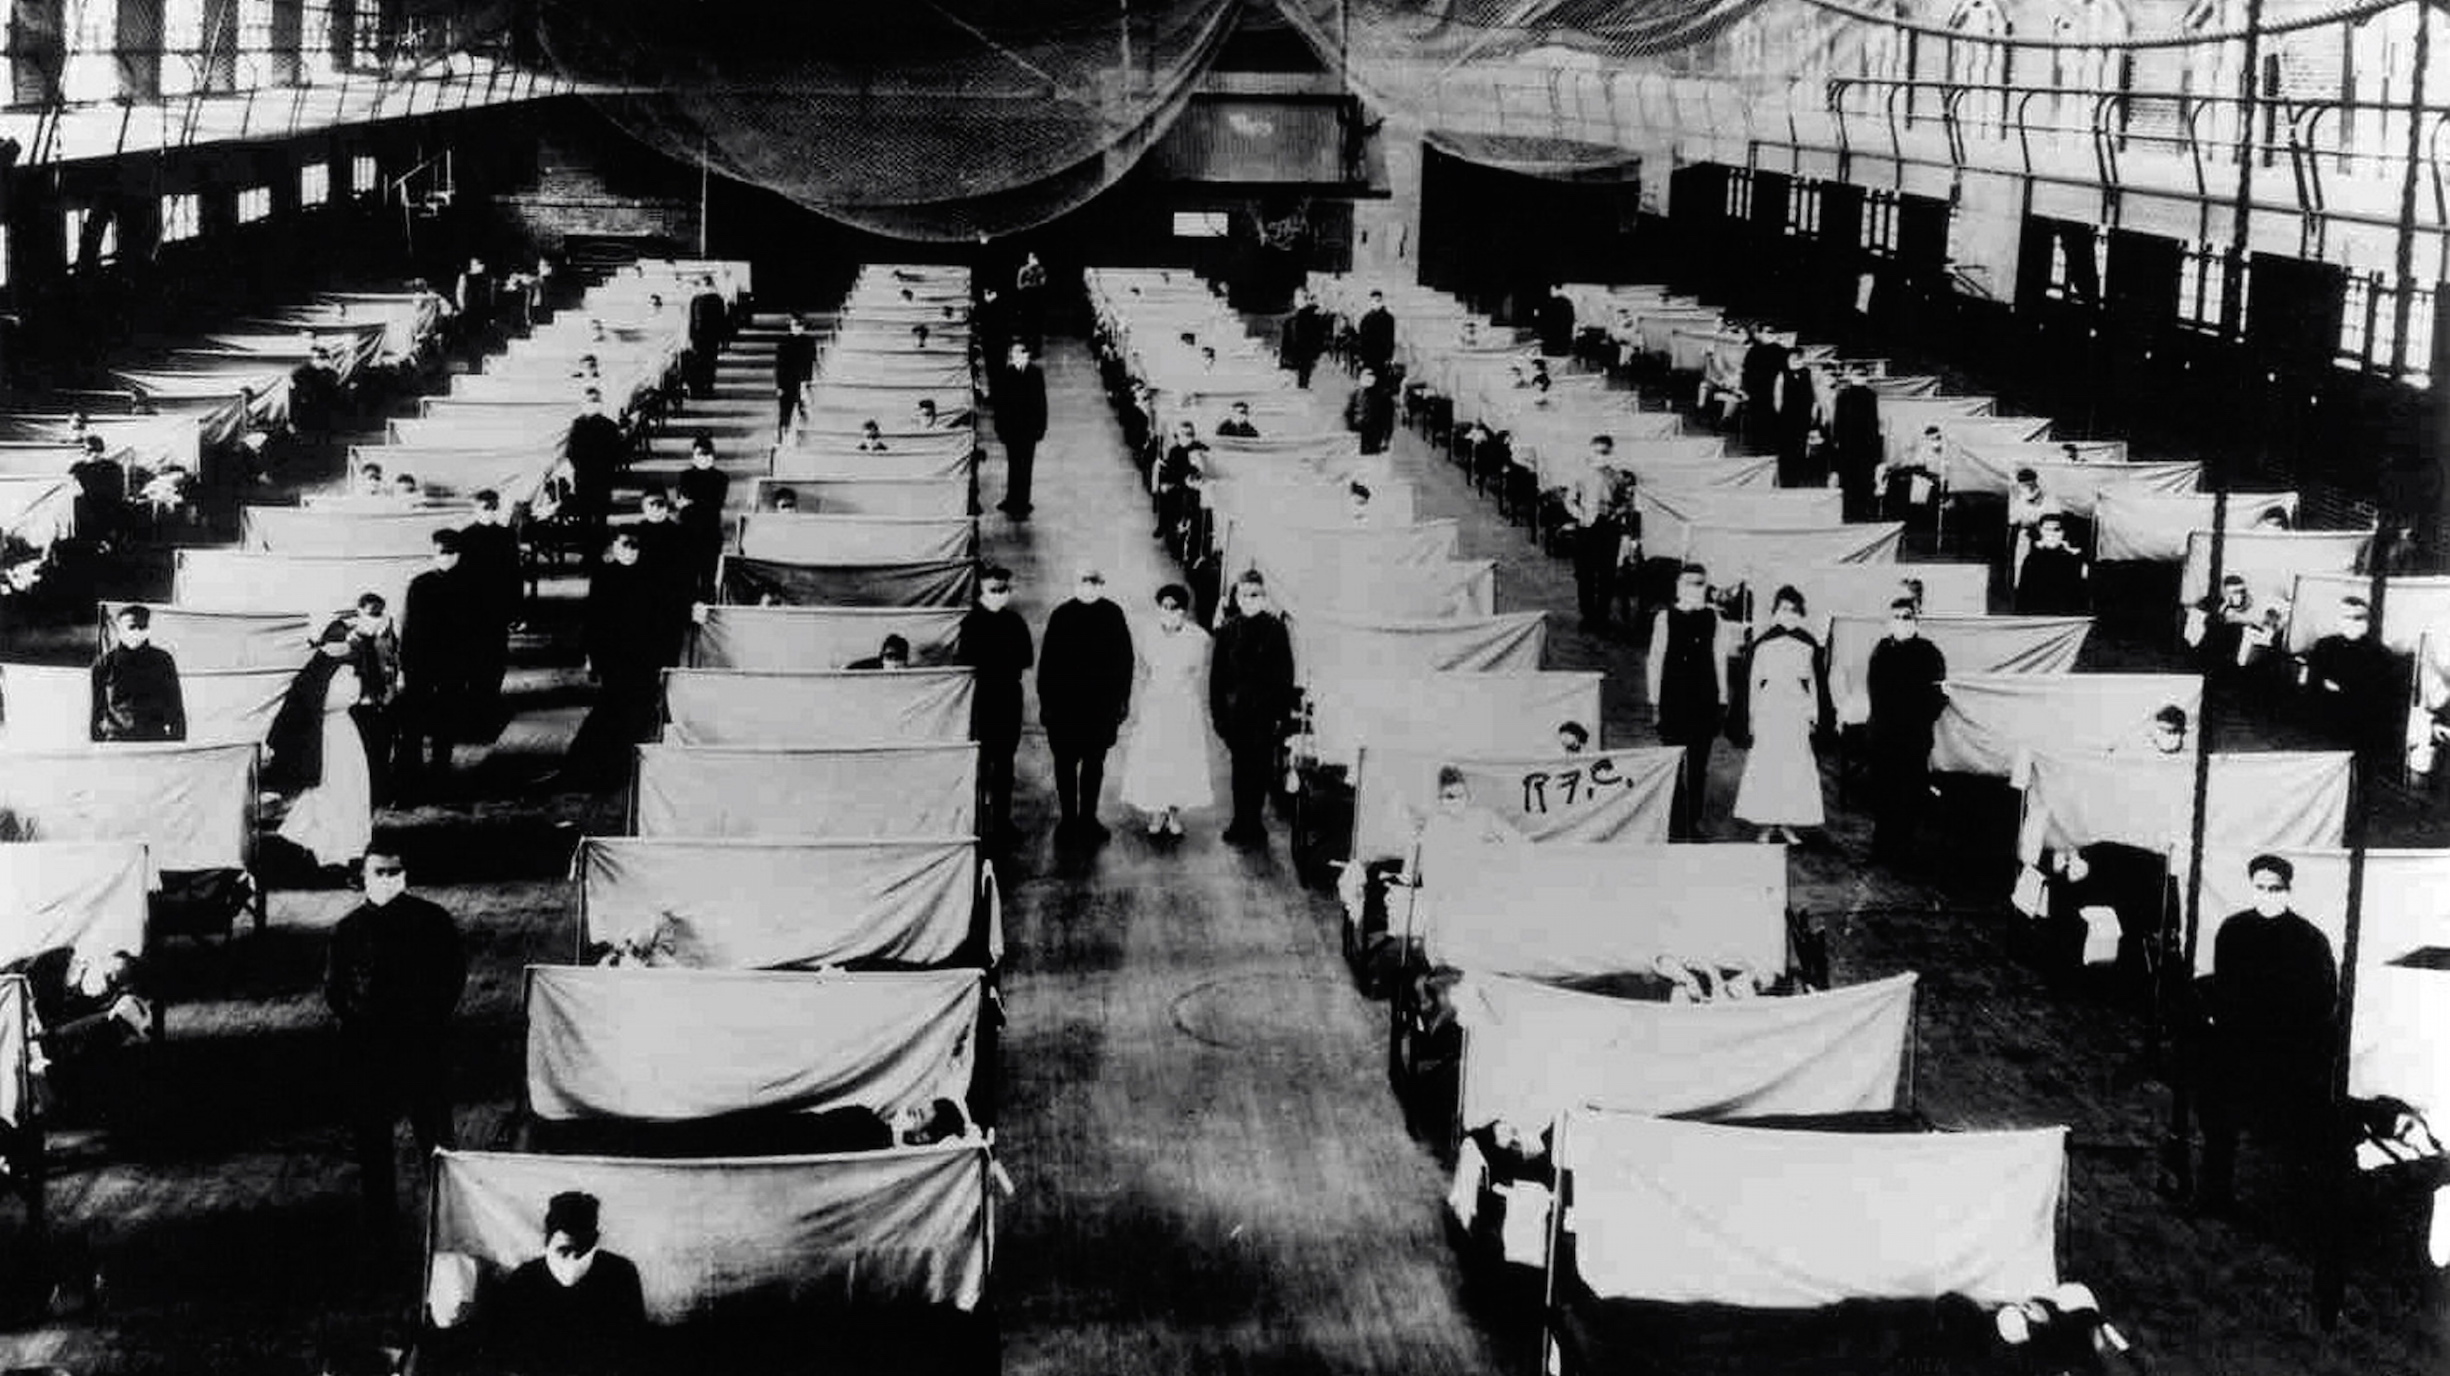 Warehouses were converted to keep the infected quarantined during the 1918 Influenza pandemic.